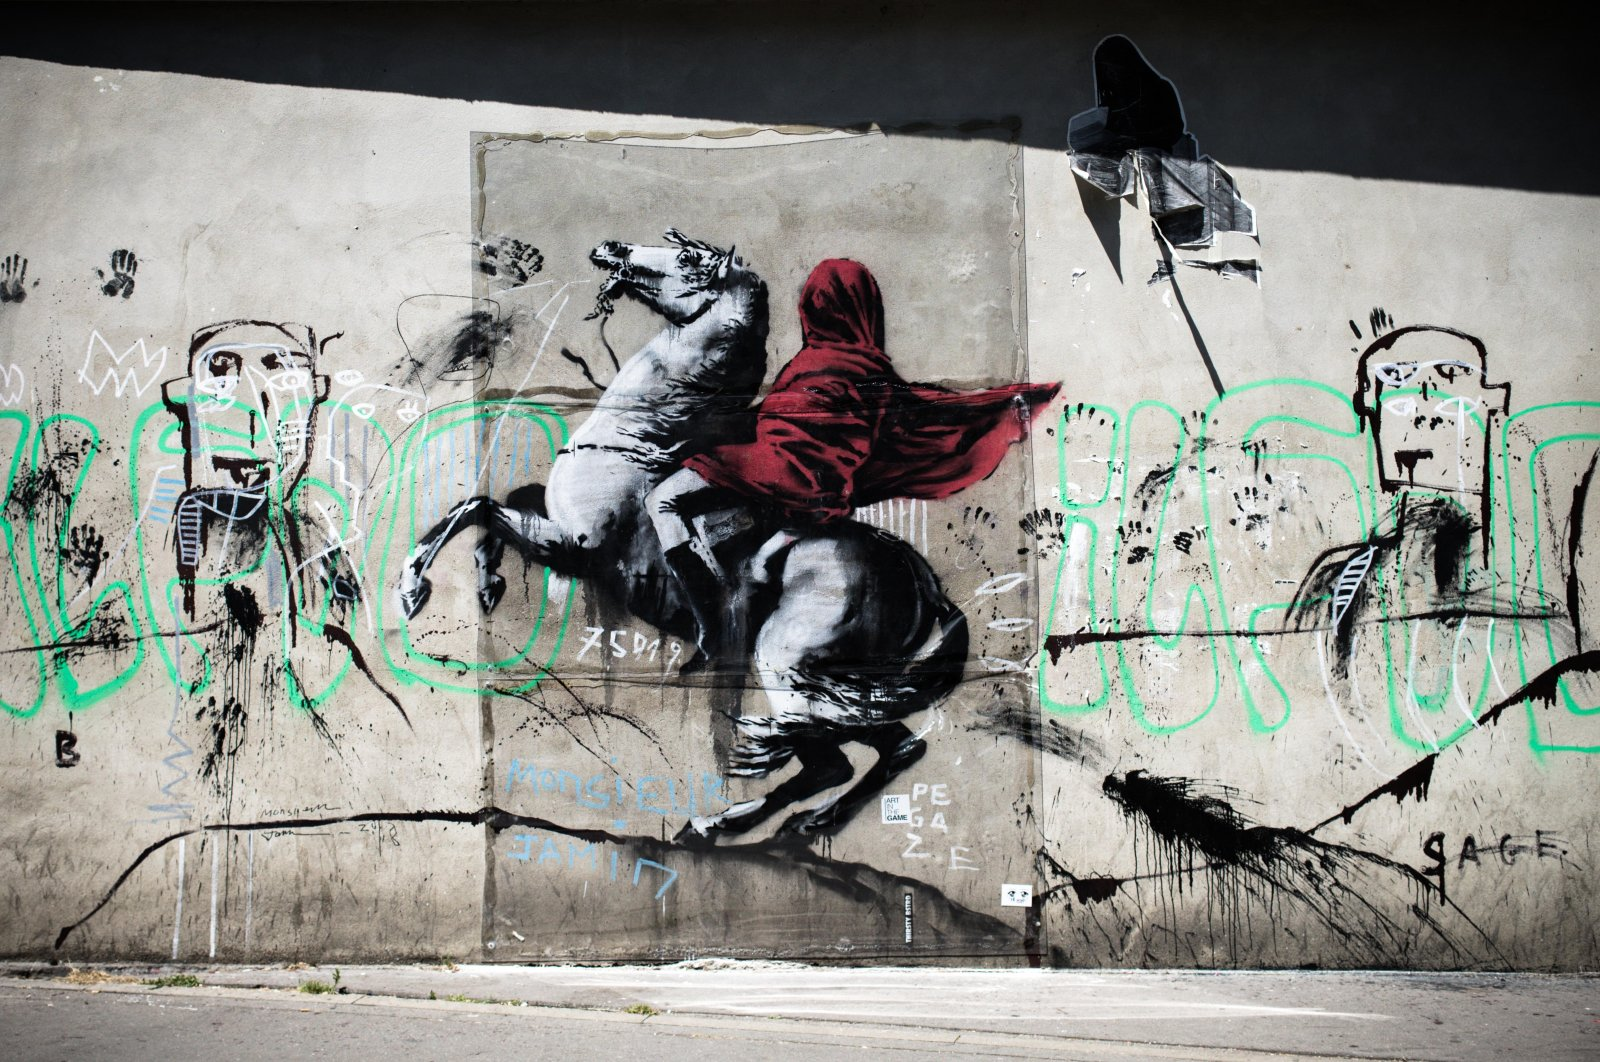 A recent artwork by street artist Banksy of Napoleon Bonaparte wearing a headscarf inspired by the original painting by Jacques-Louis David, Paris, France, June 26, 2018. (Photo by Getty Images)